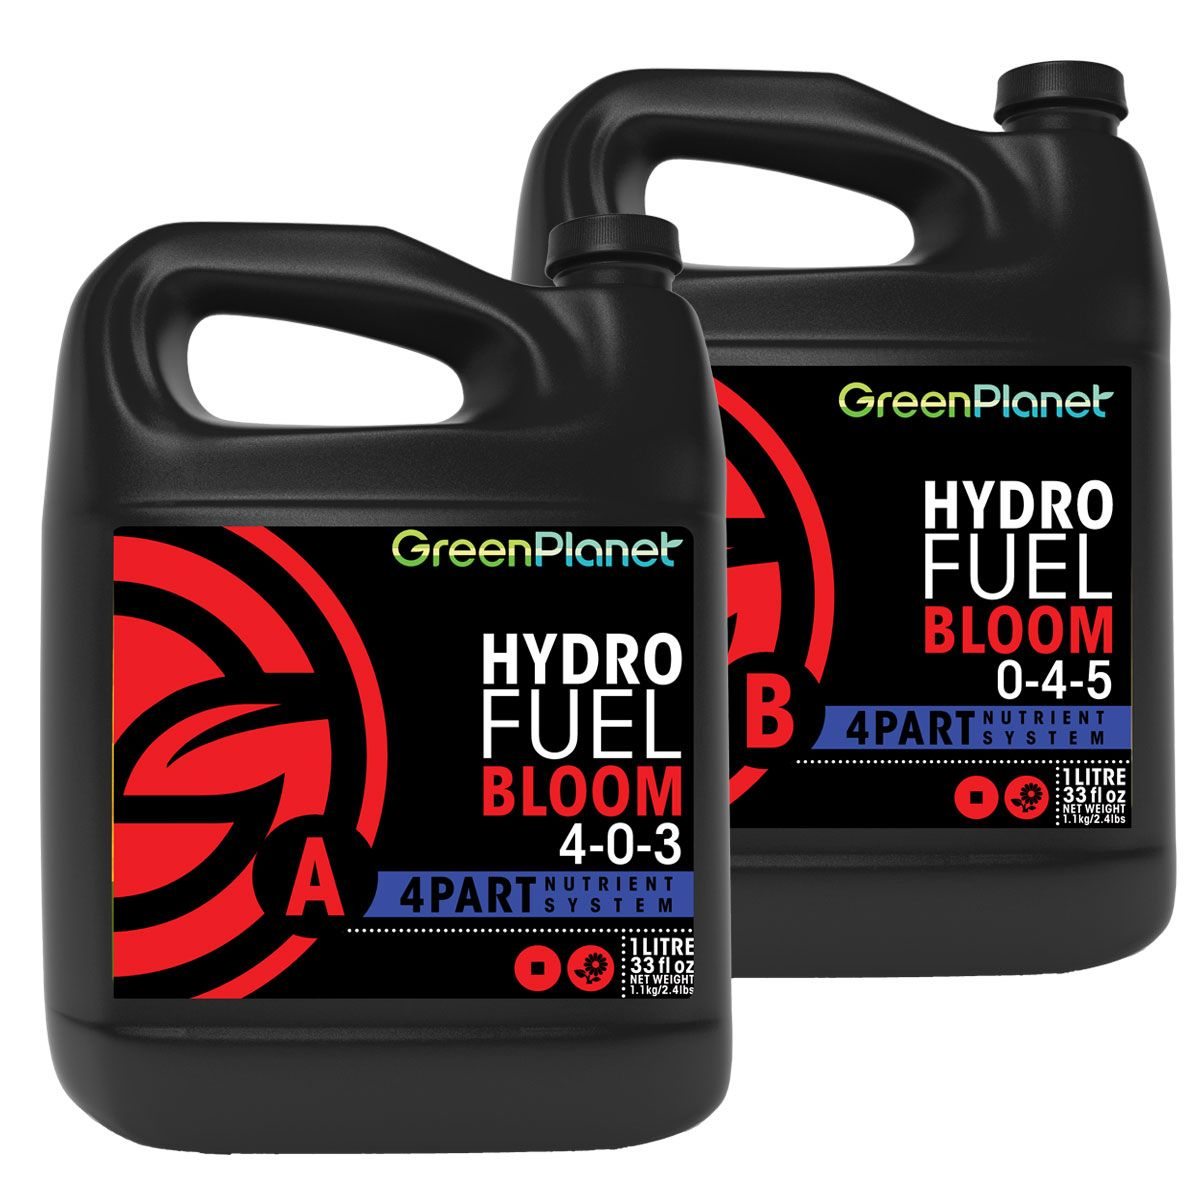 Hydro Fuel Bloom A 1 Litre